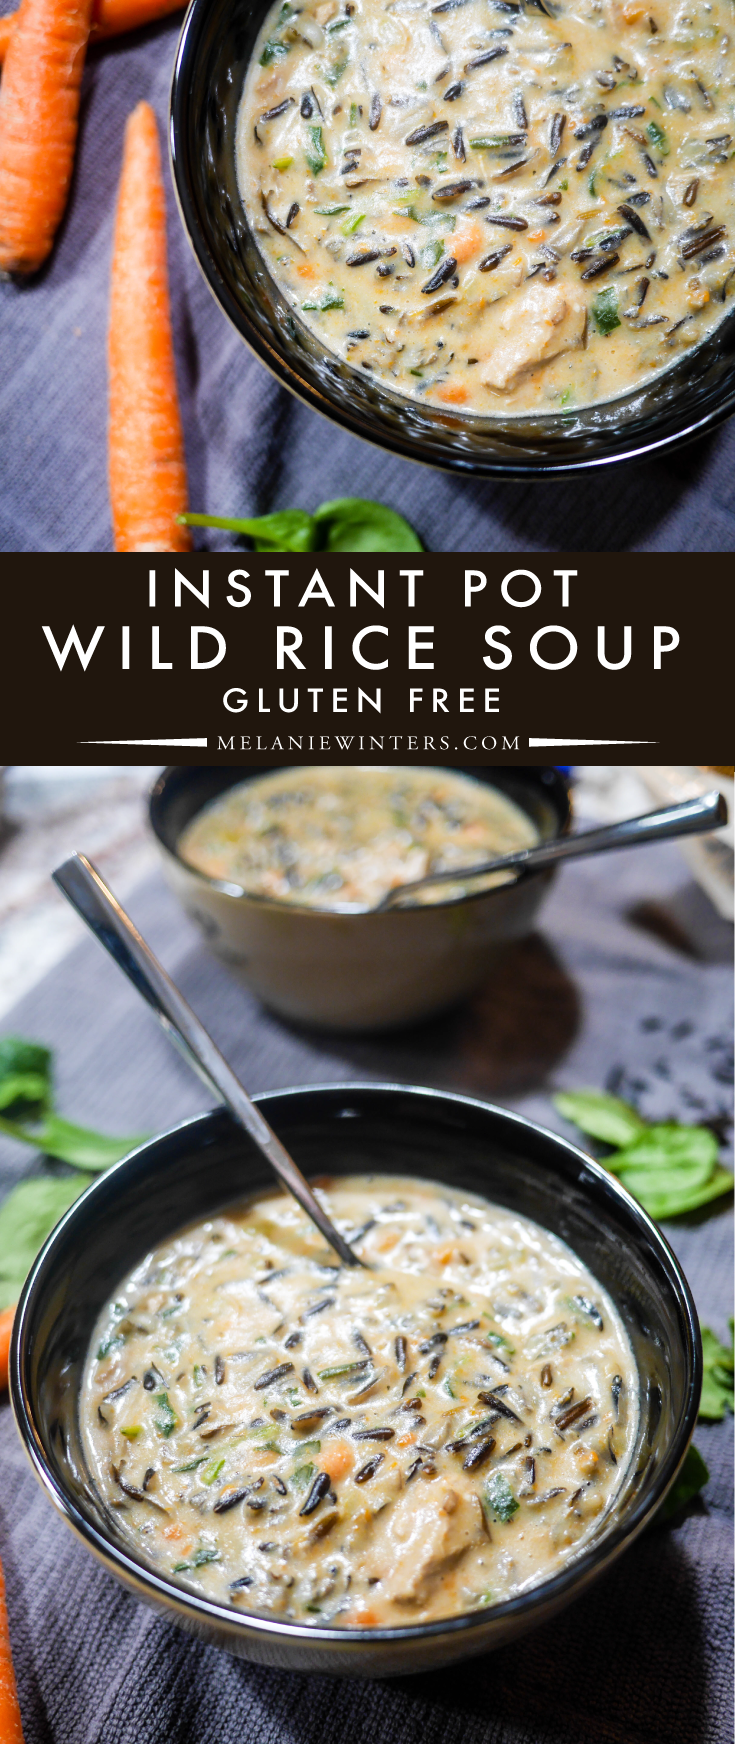 This easy to make instant pot wild rice soup has a few secret ingredients that will take your soup game to a whole new level. Oh, and bonus? It's gluten free!